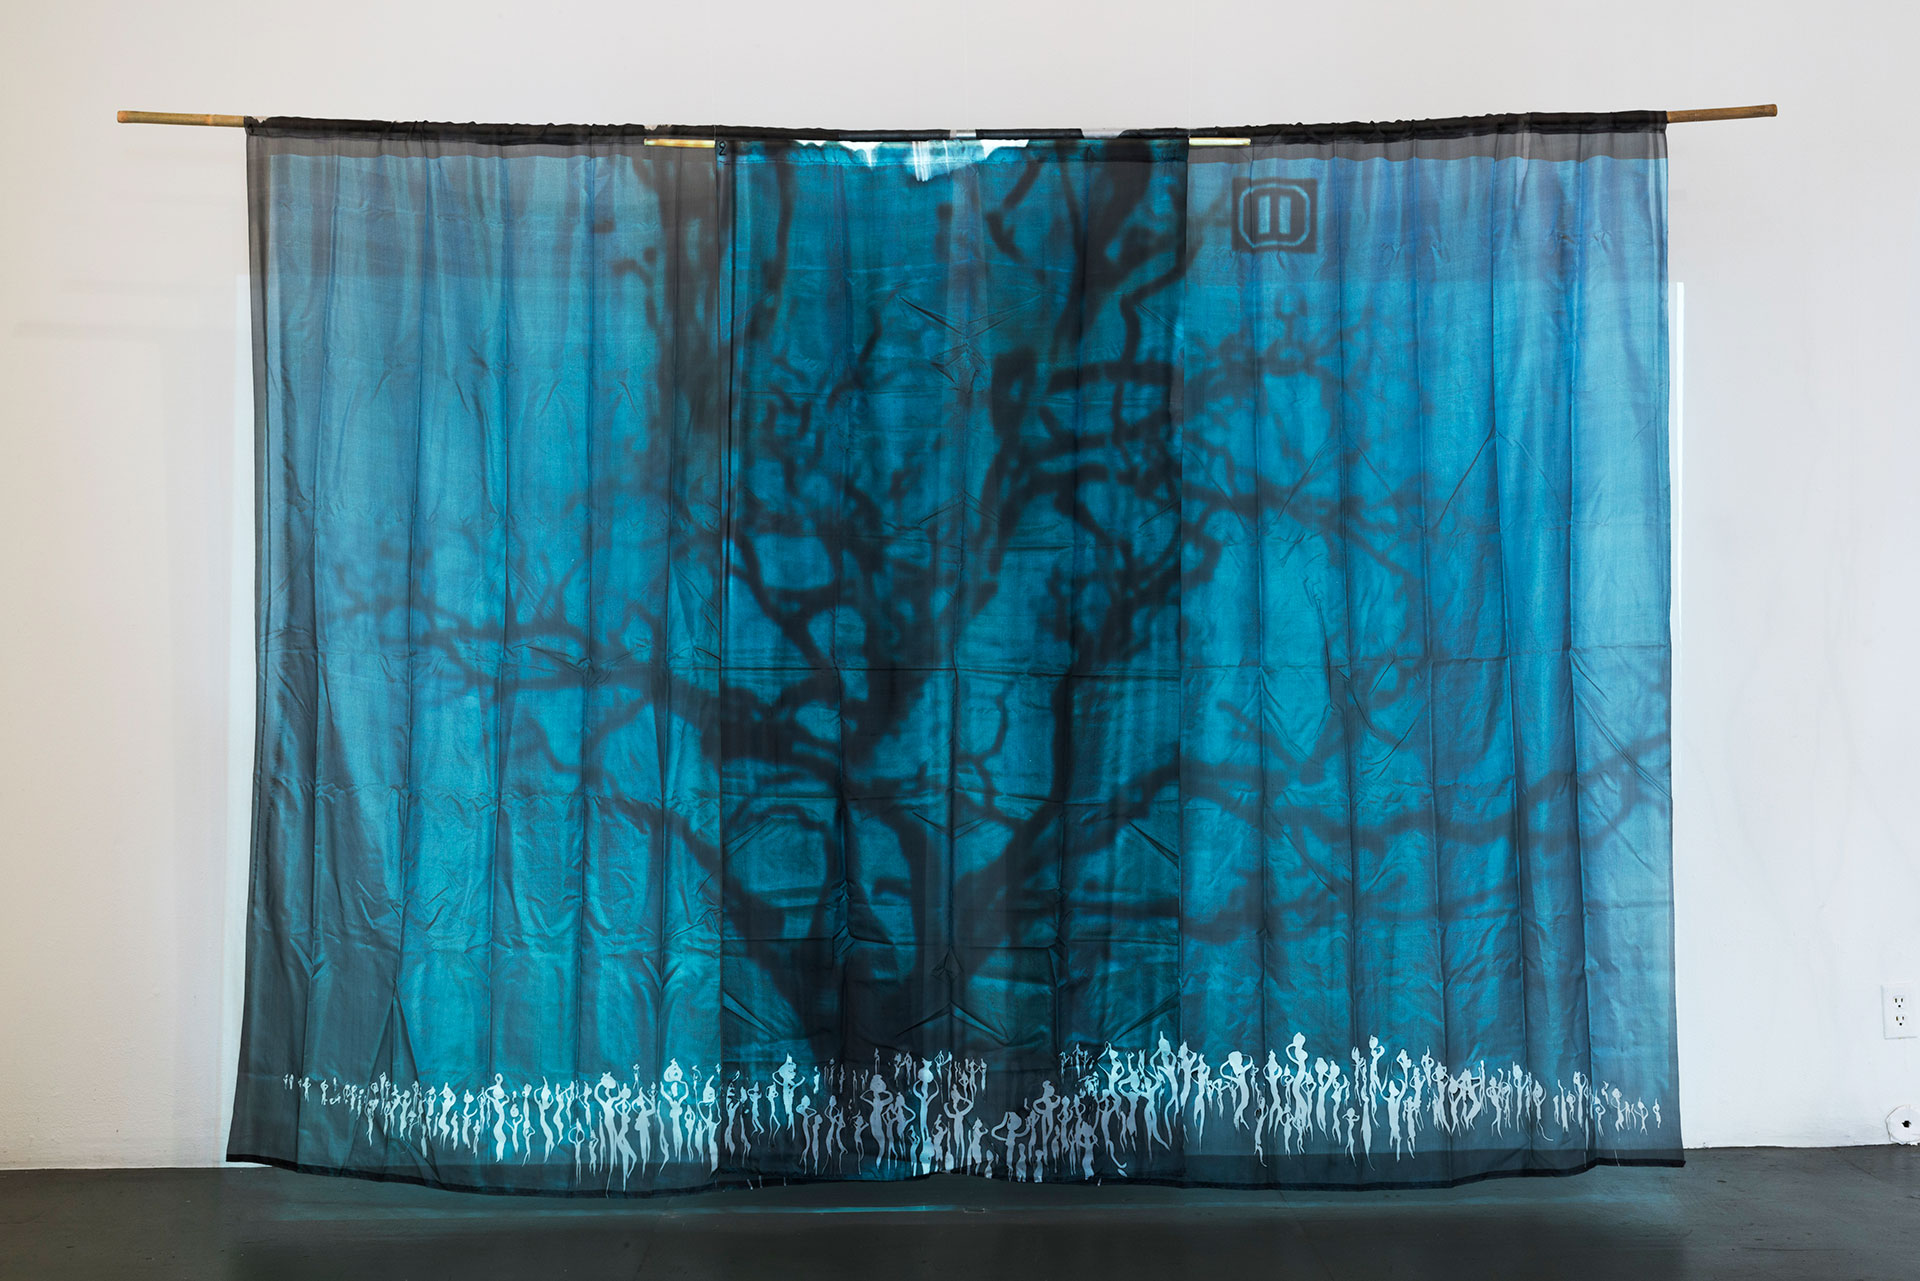 Charley Case, Atomic Tree, (Re-)Cycle of Paradise exhibition, COP15, Copenhagen, 2009